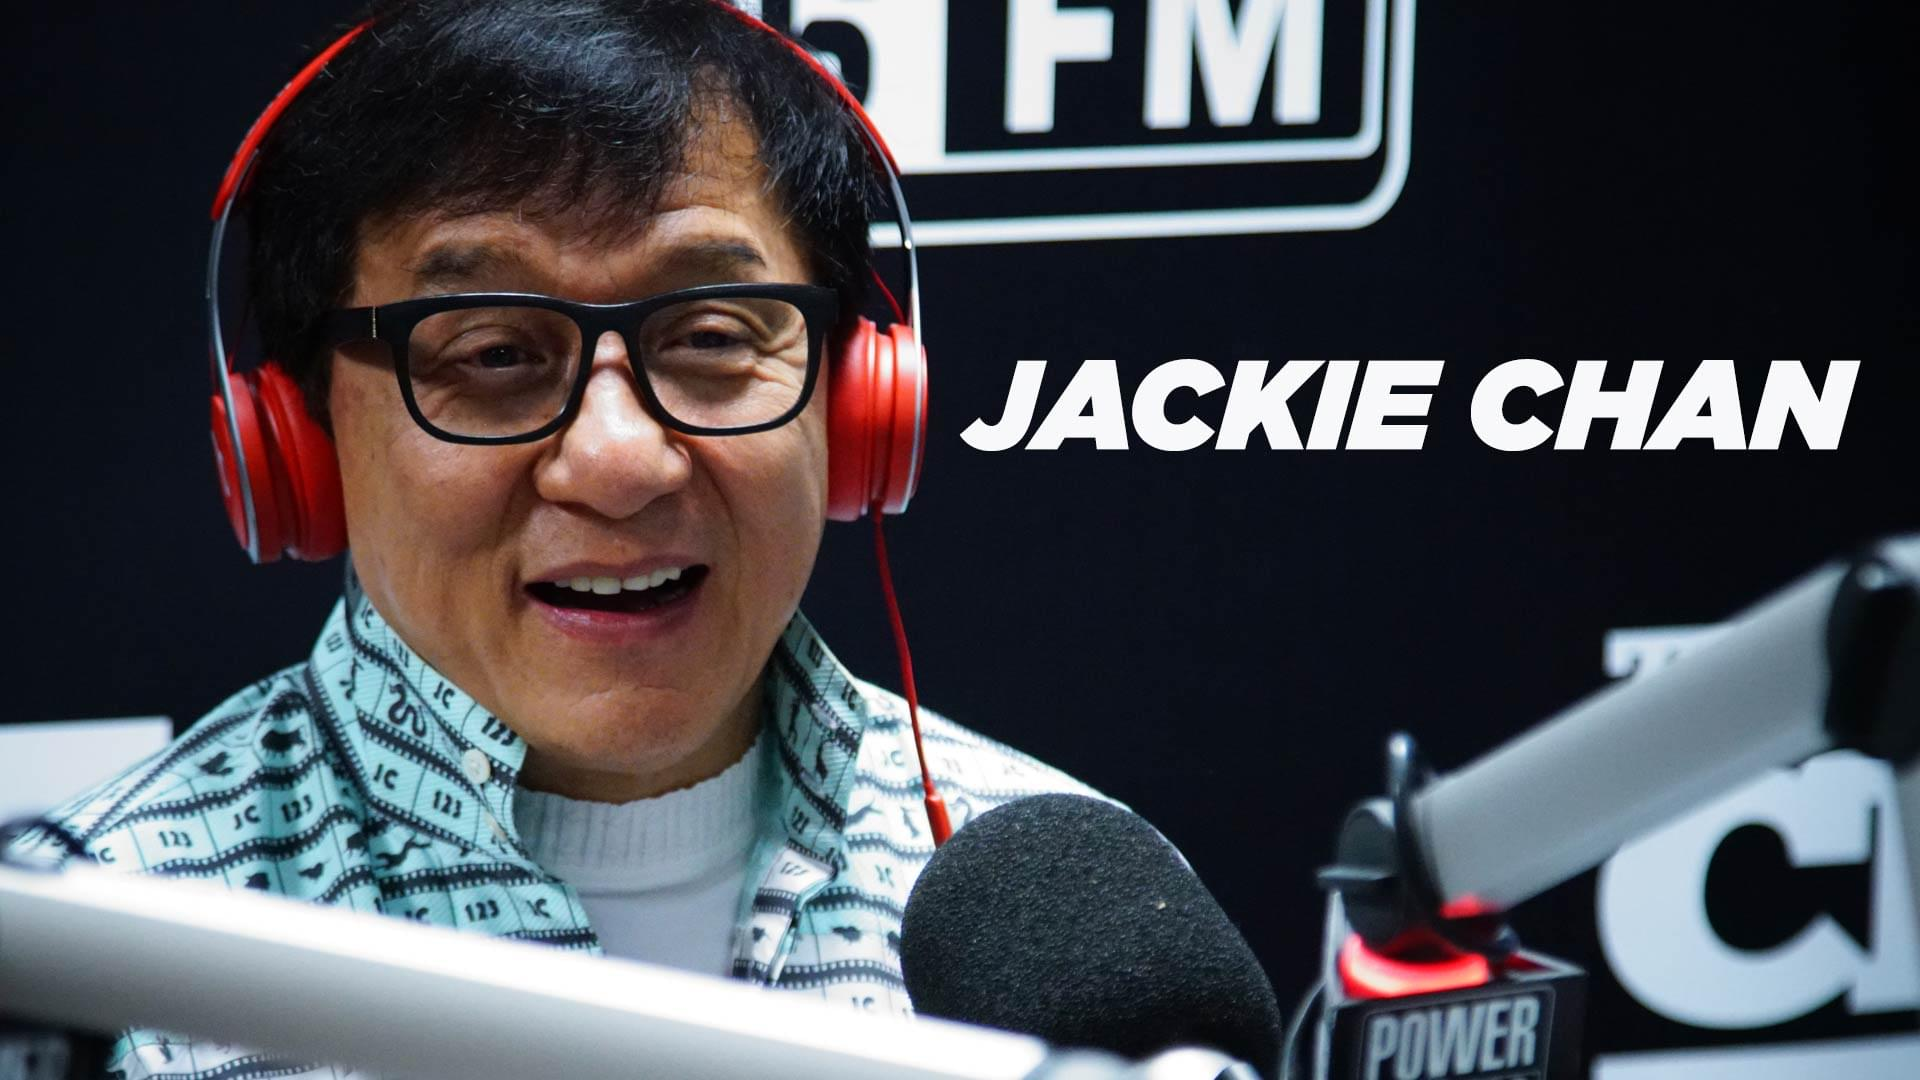 Jackie Chan Talks 'The Foreigner', Being Typecast, + Confirms Rush Hour 4 On #TheCruzShow! [WATCH]